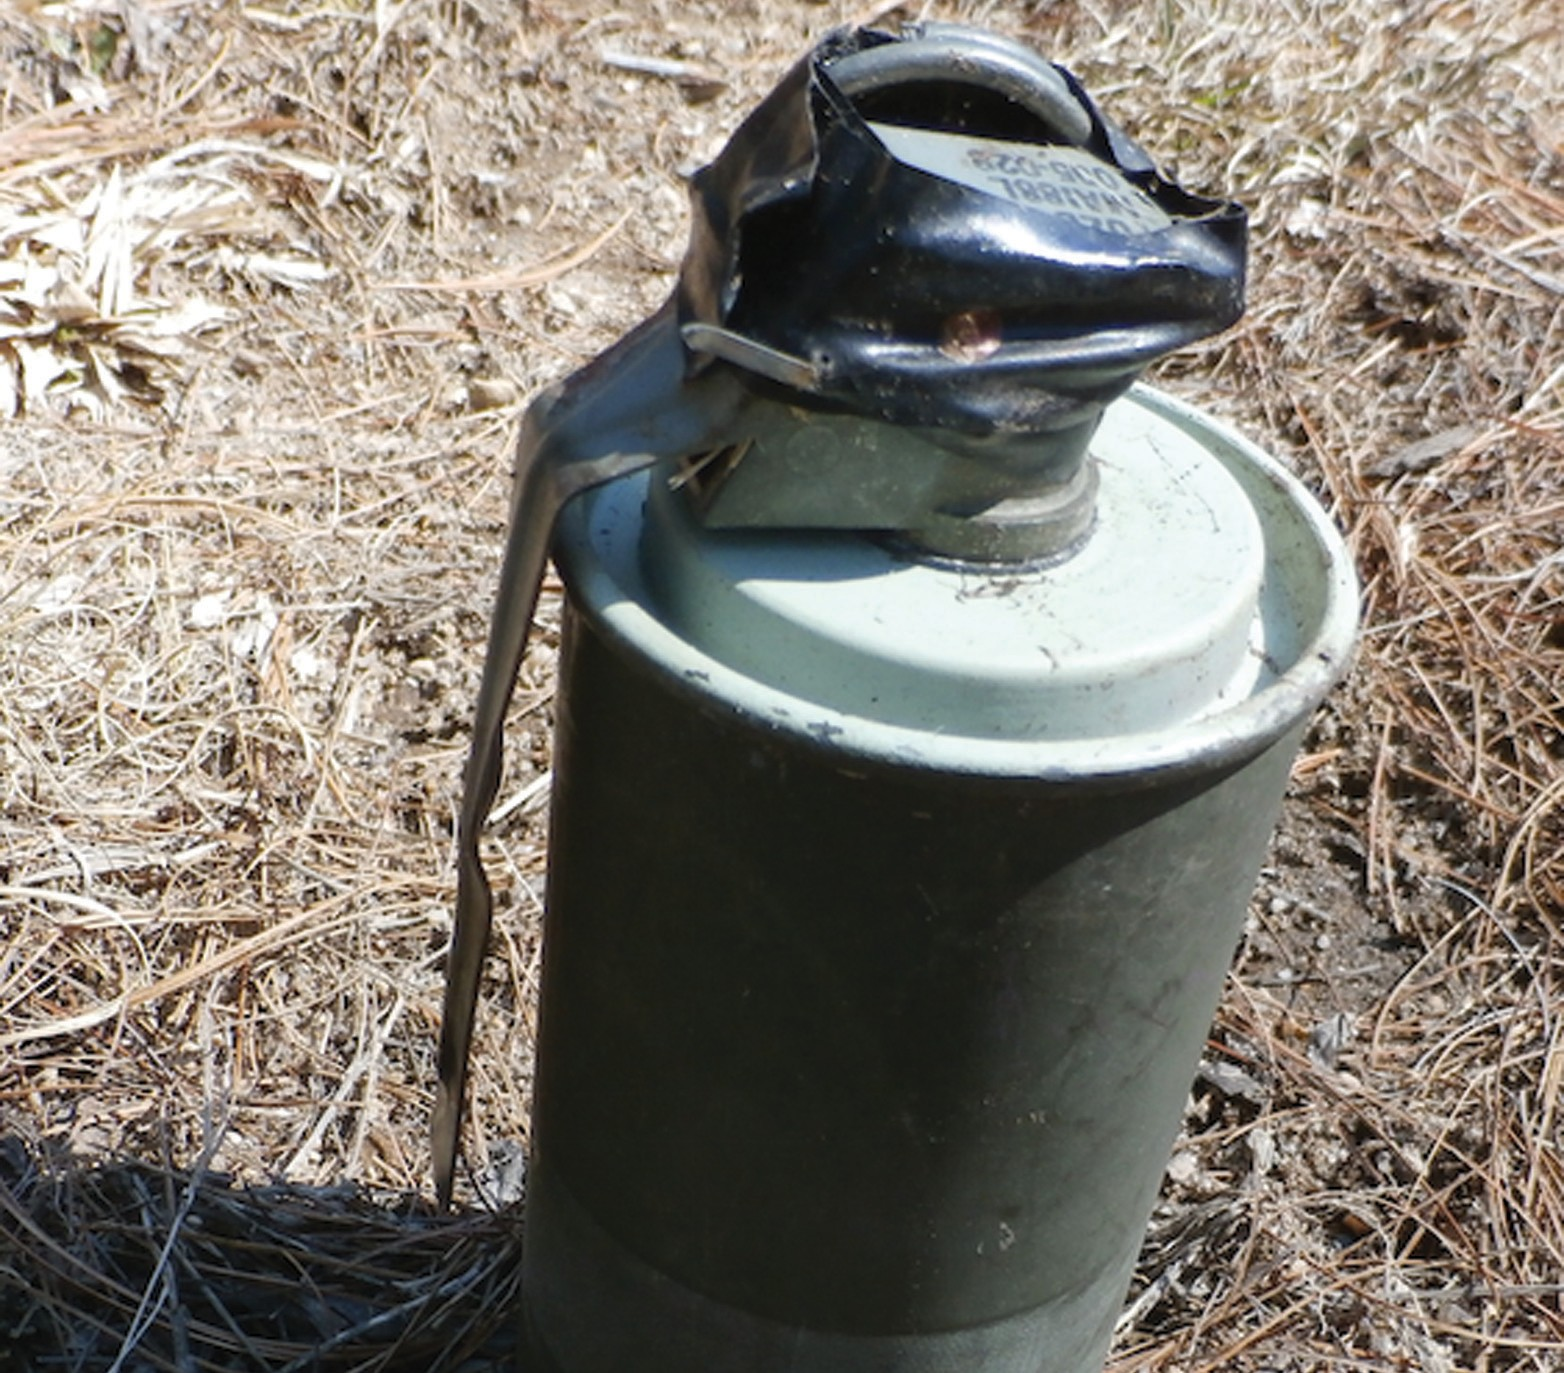 A smoke bomb was found in Limington on Saturday.